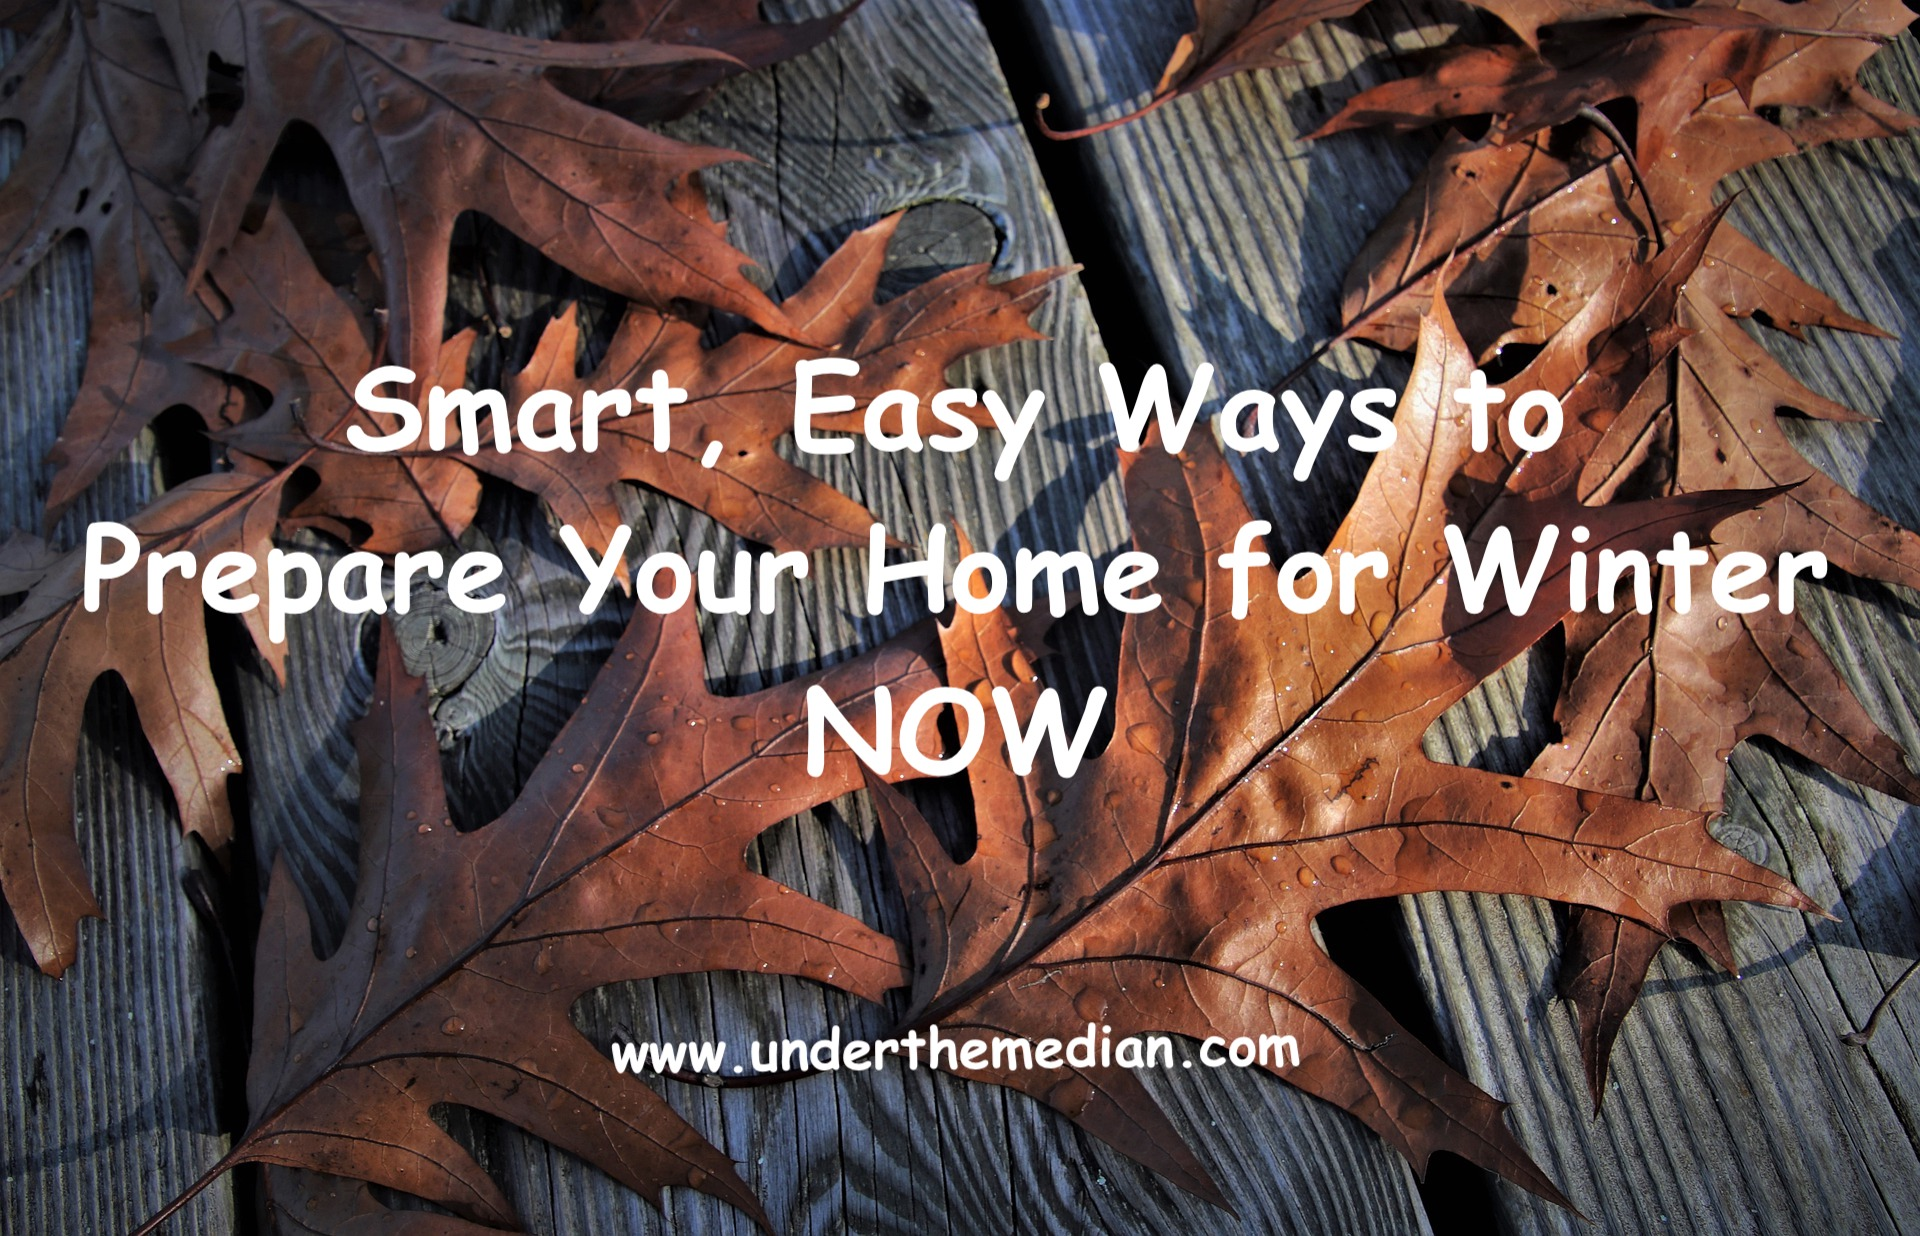 Smart, Easy Ways to Prepare Your Home for Winter Now